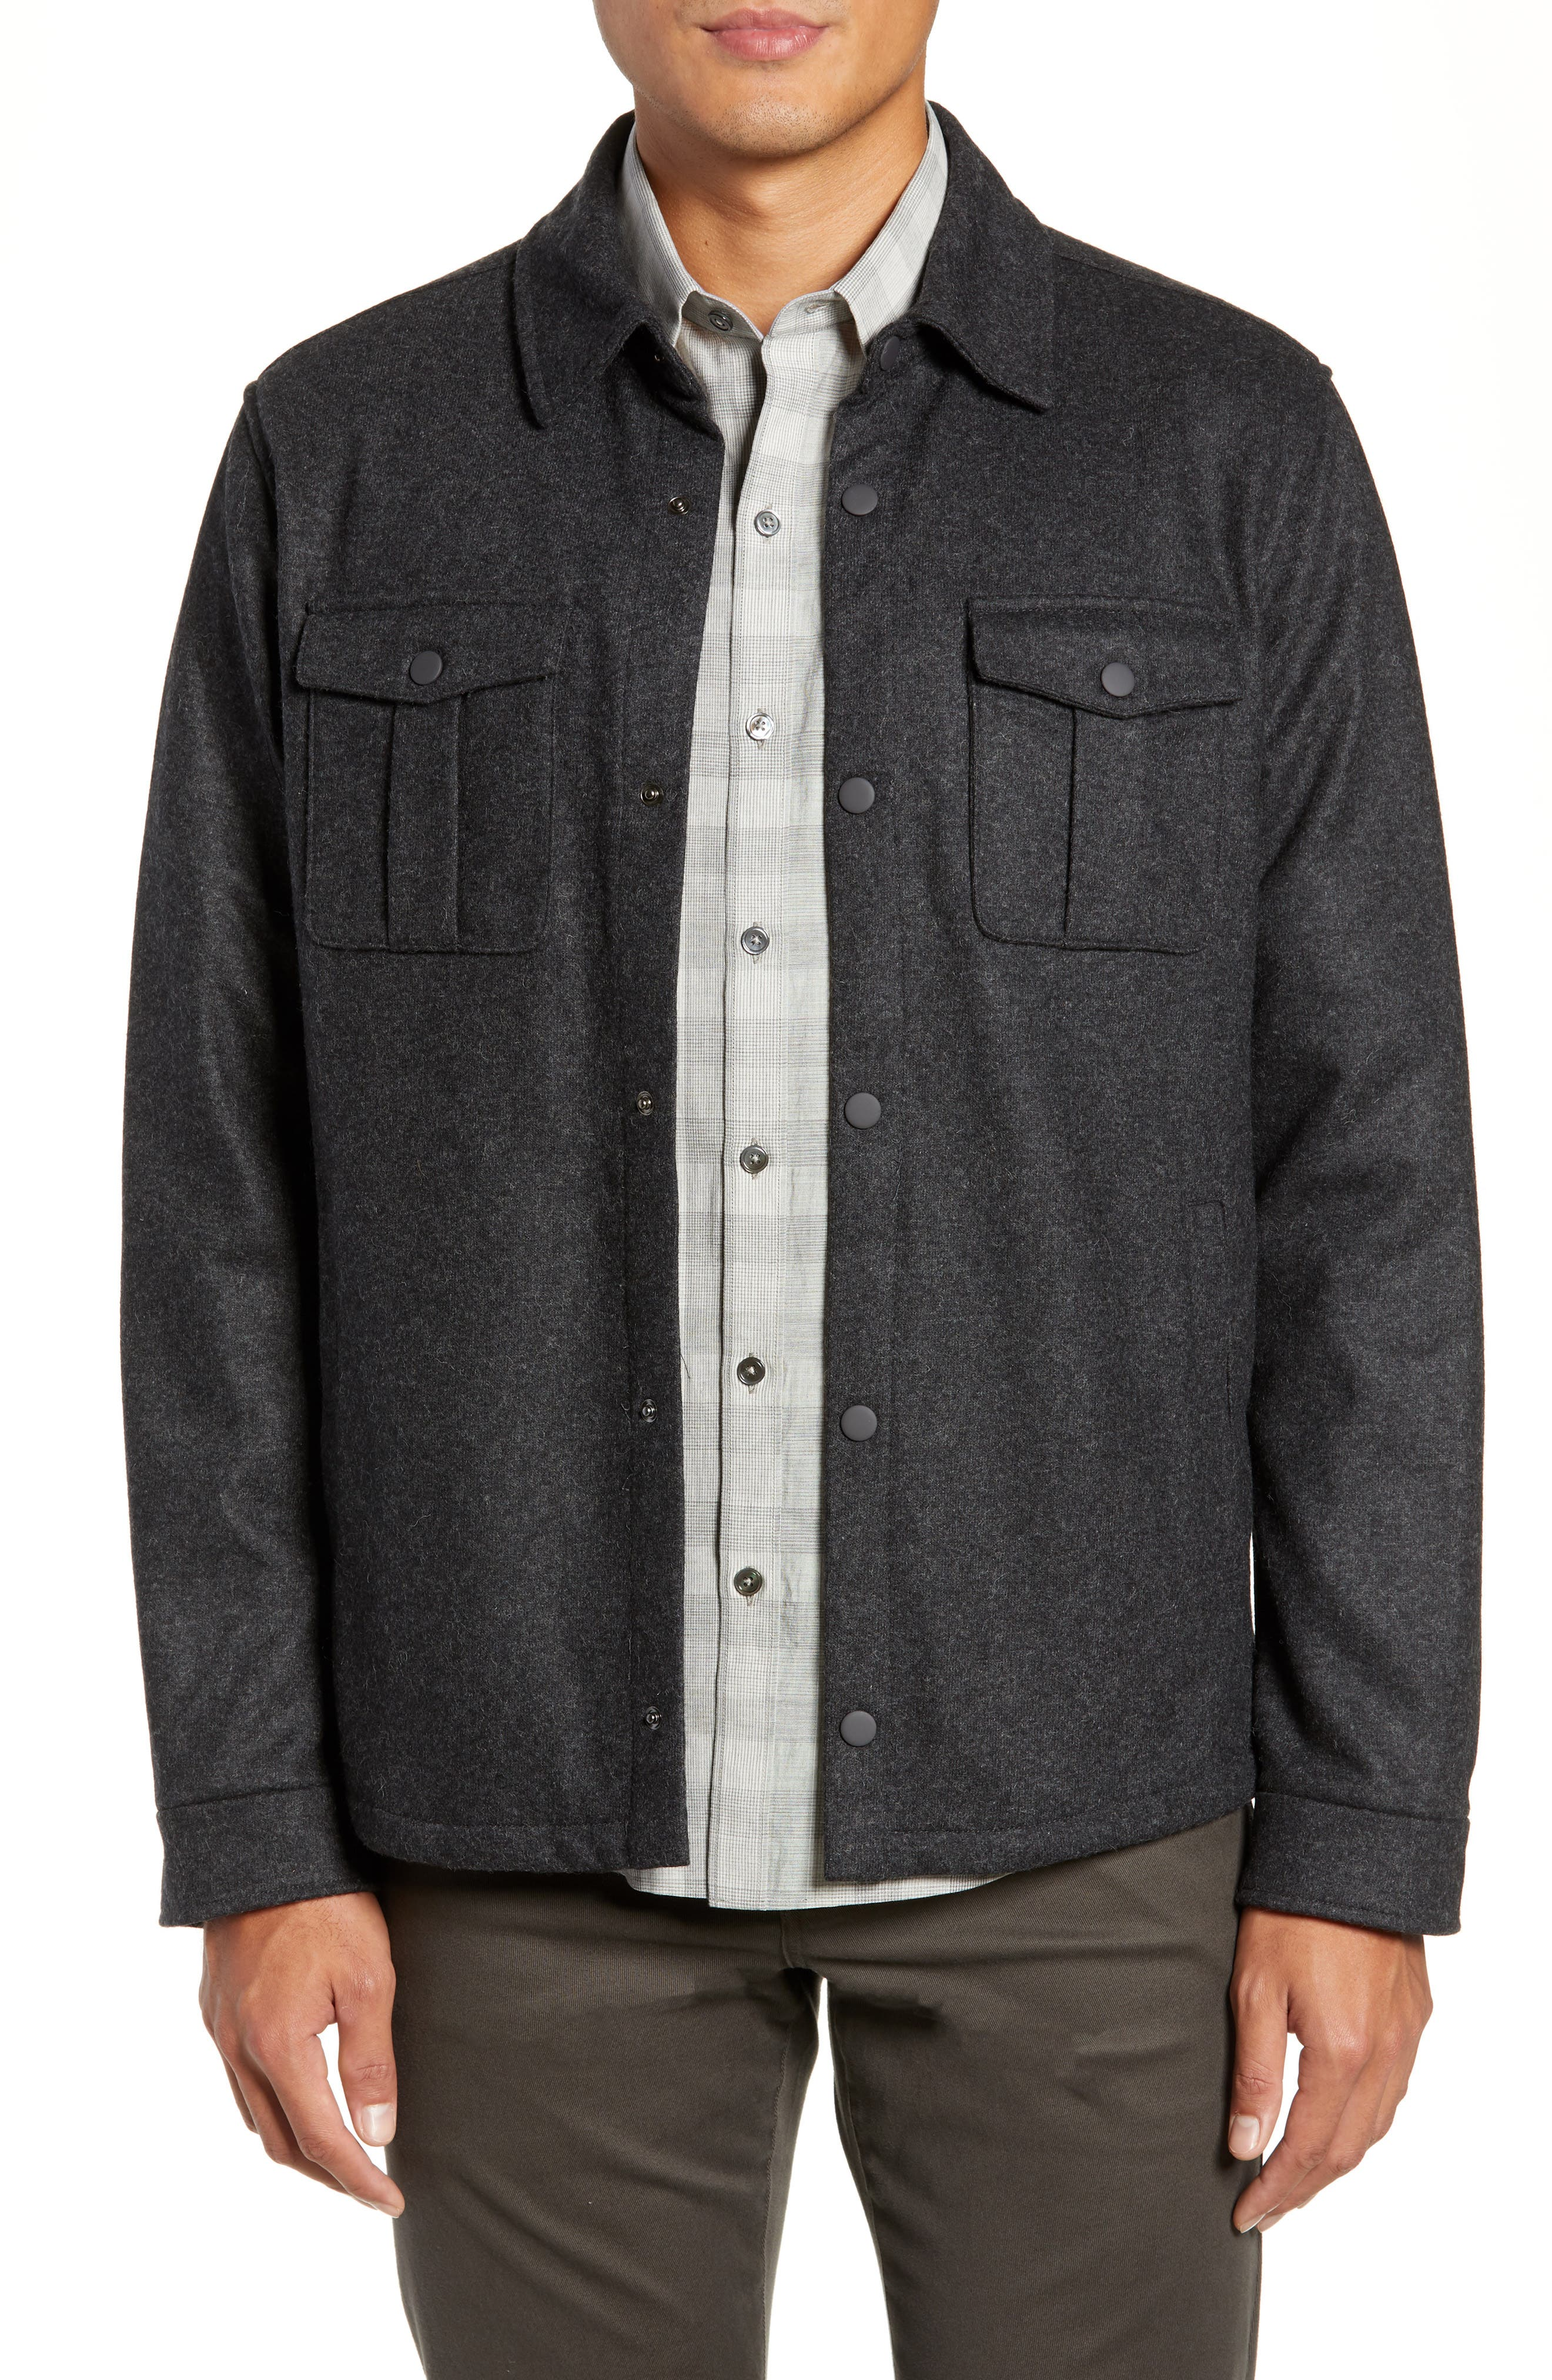 Seymour Regular Fit Wool Blend Shirt Jacket,                         Main,                         color, DARK GREY